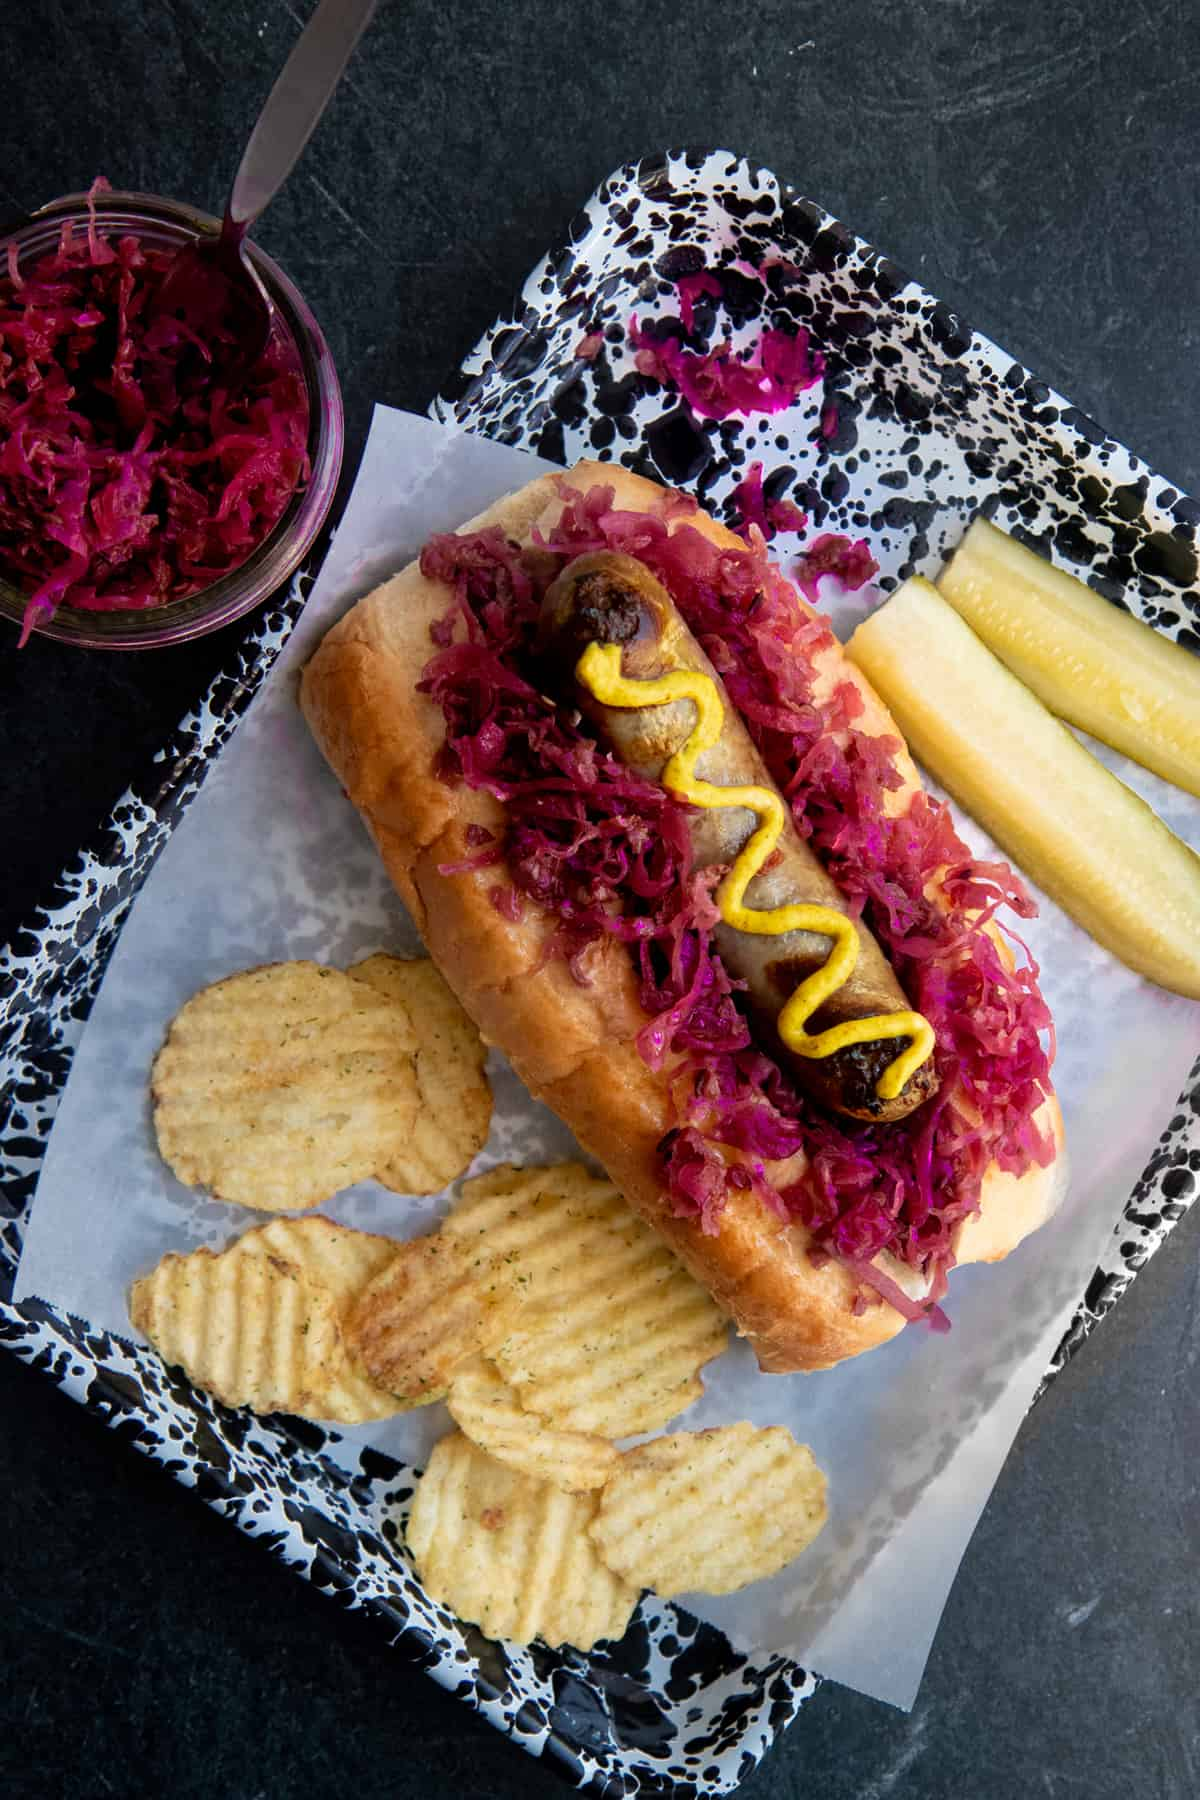 A brat drizzled with mustard sits on a bed of homemade sauerkraut on top of a bun. Potato chips and a sliced pickle surround the brat.